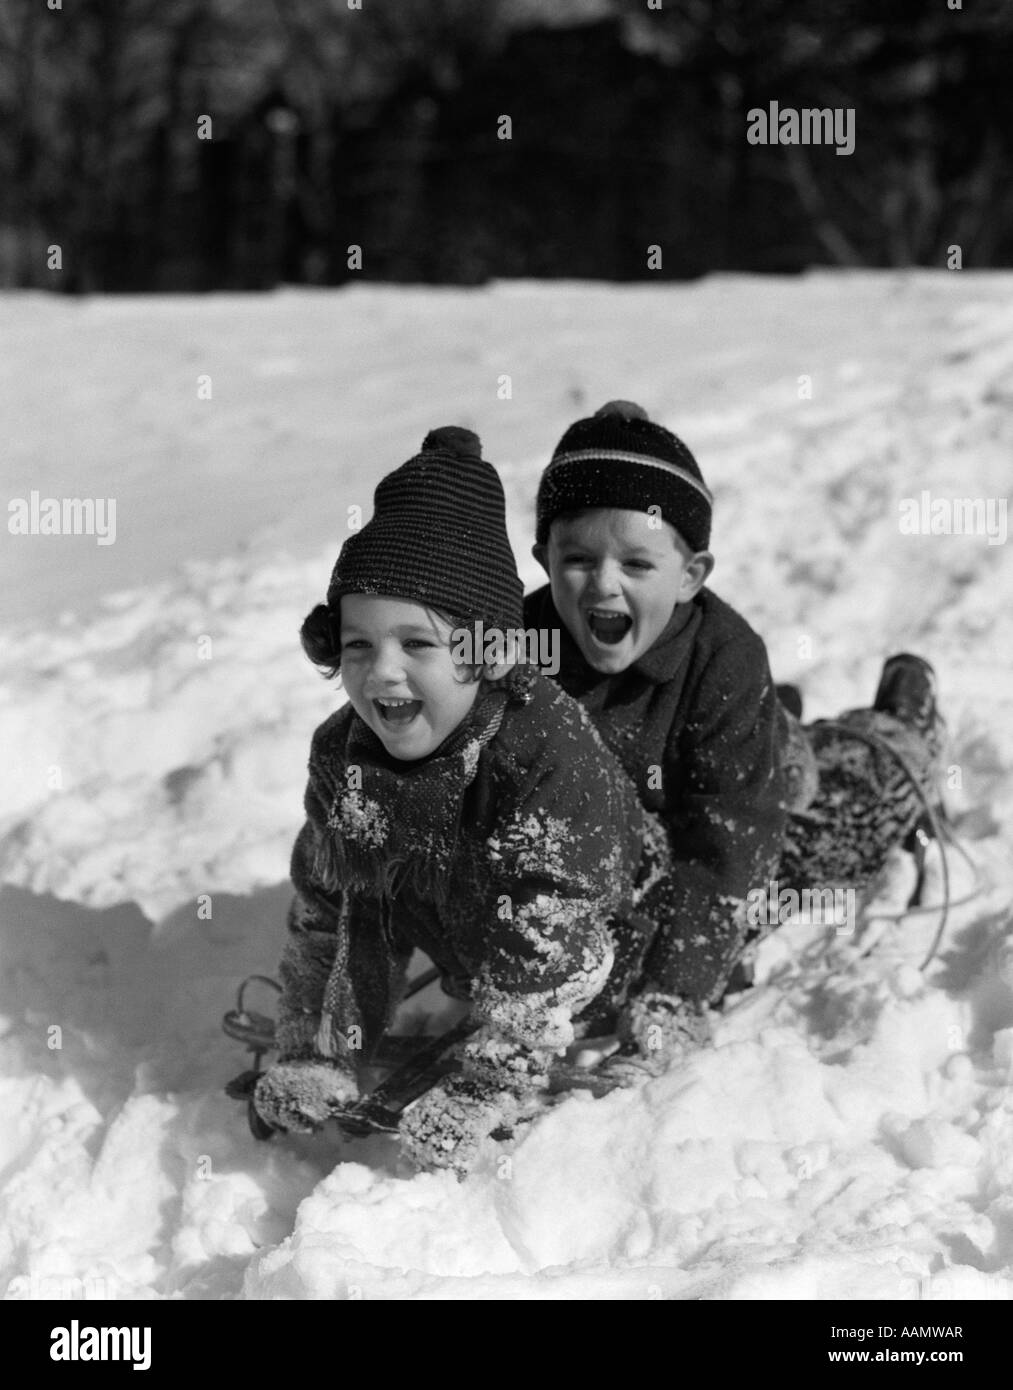 1930s BOY AND GIRL LAUGHING SLEDDING IN SNOW - Stock Image